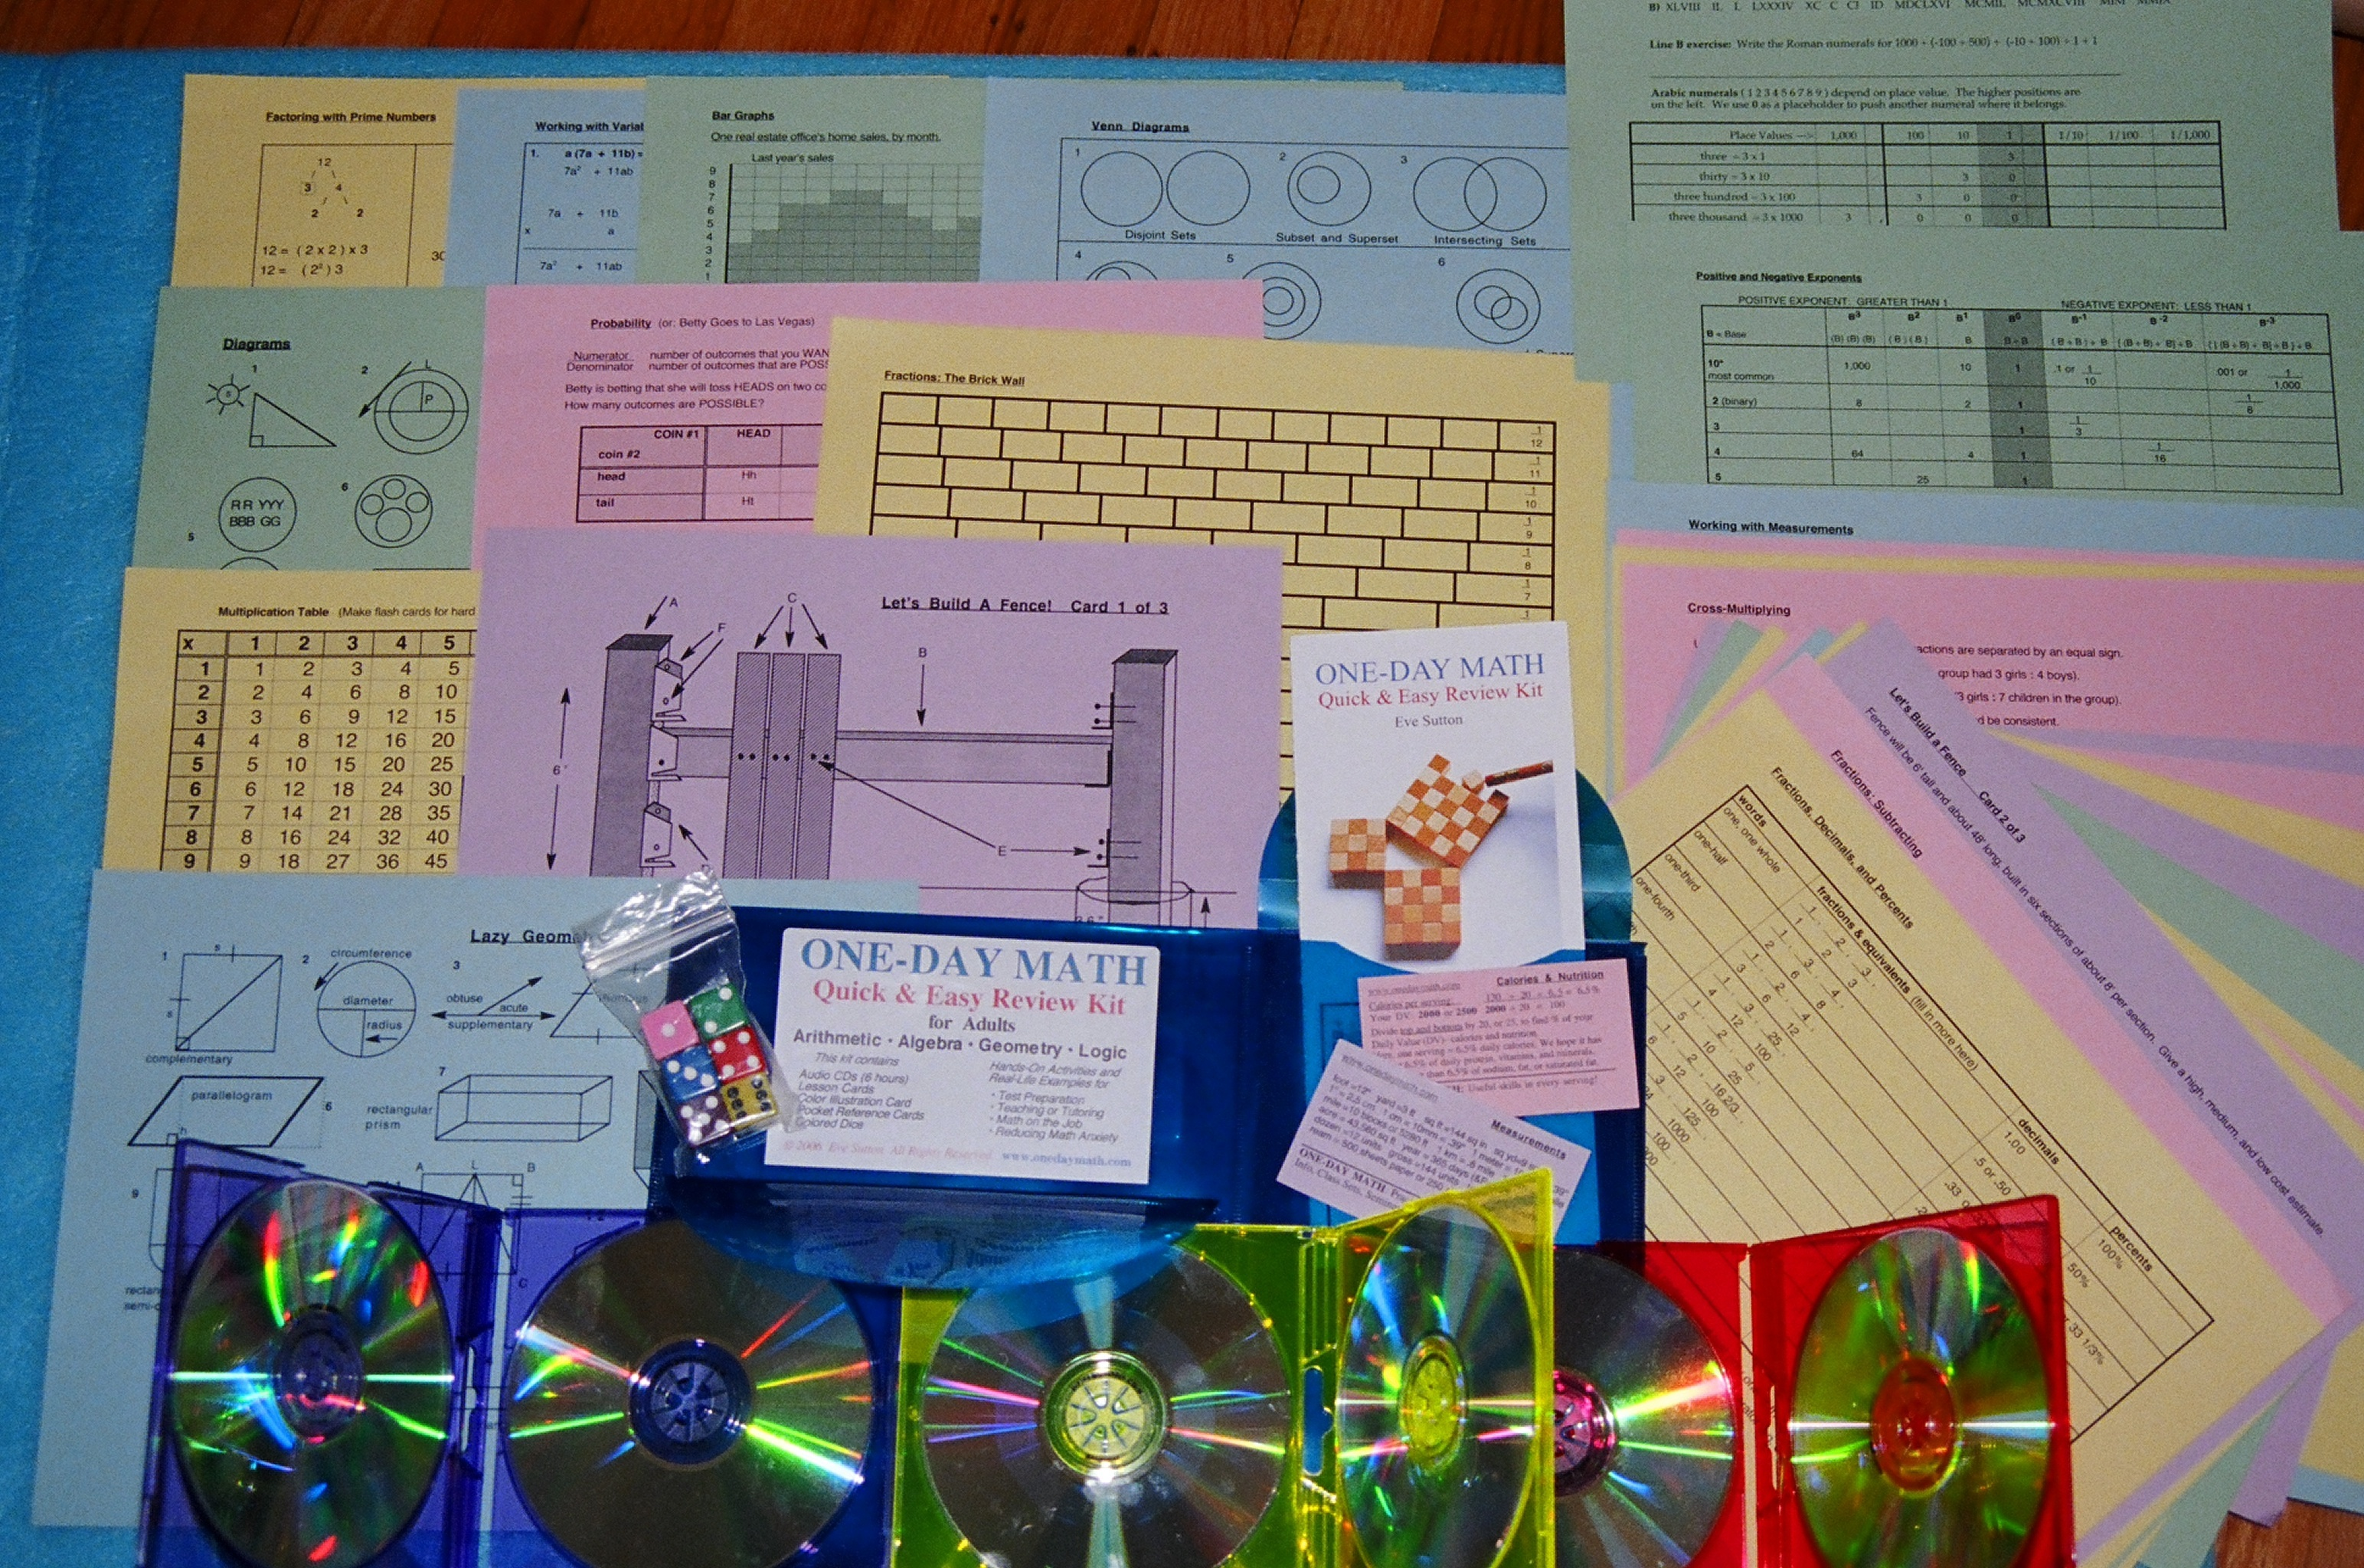 photo of math kit showing six compact disks, lesson cards, colored dice, and three-pocket carrier